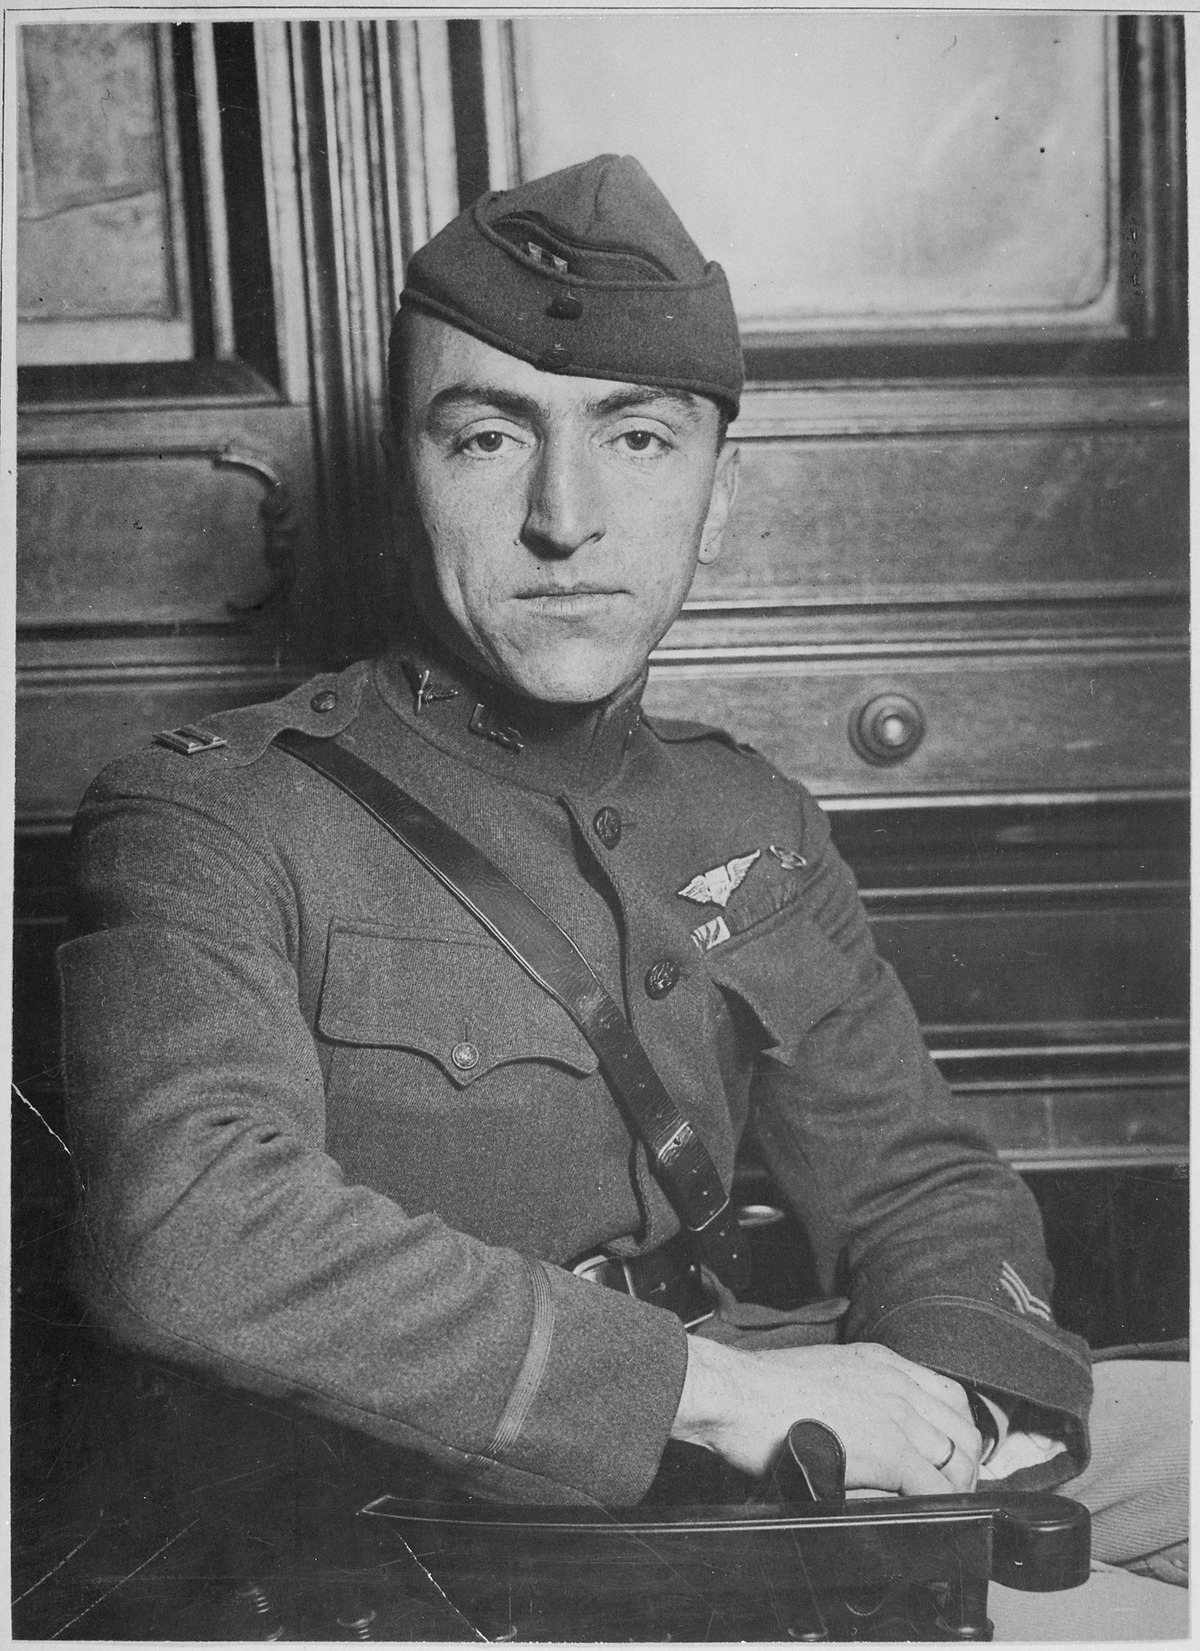 lossy-page1-1200px-Captain_Edward_Rickenbacker,_America's_premier__Ace__officially_credited_with_22_enemy_planes_and_the_proud_wearer_of_th_-_NARA_-_533720.tif.jpg